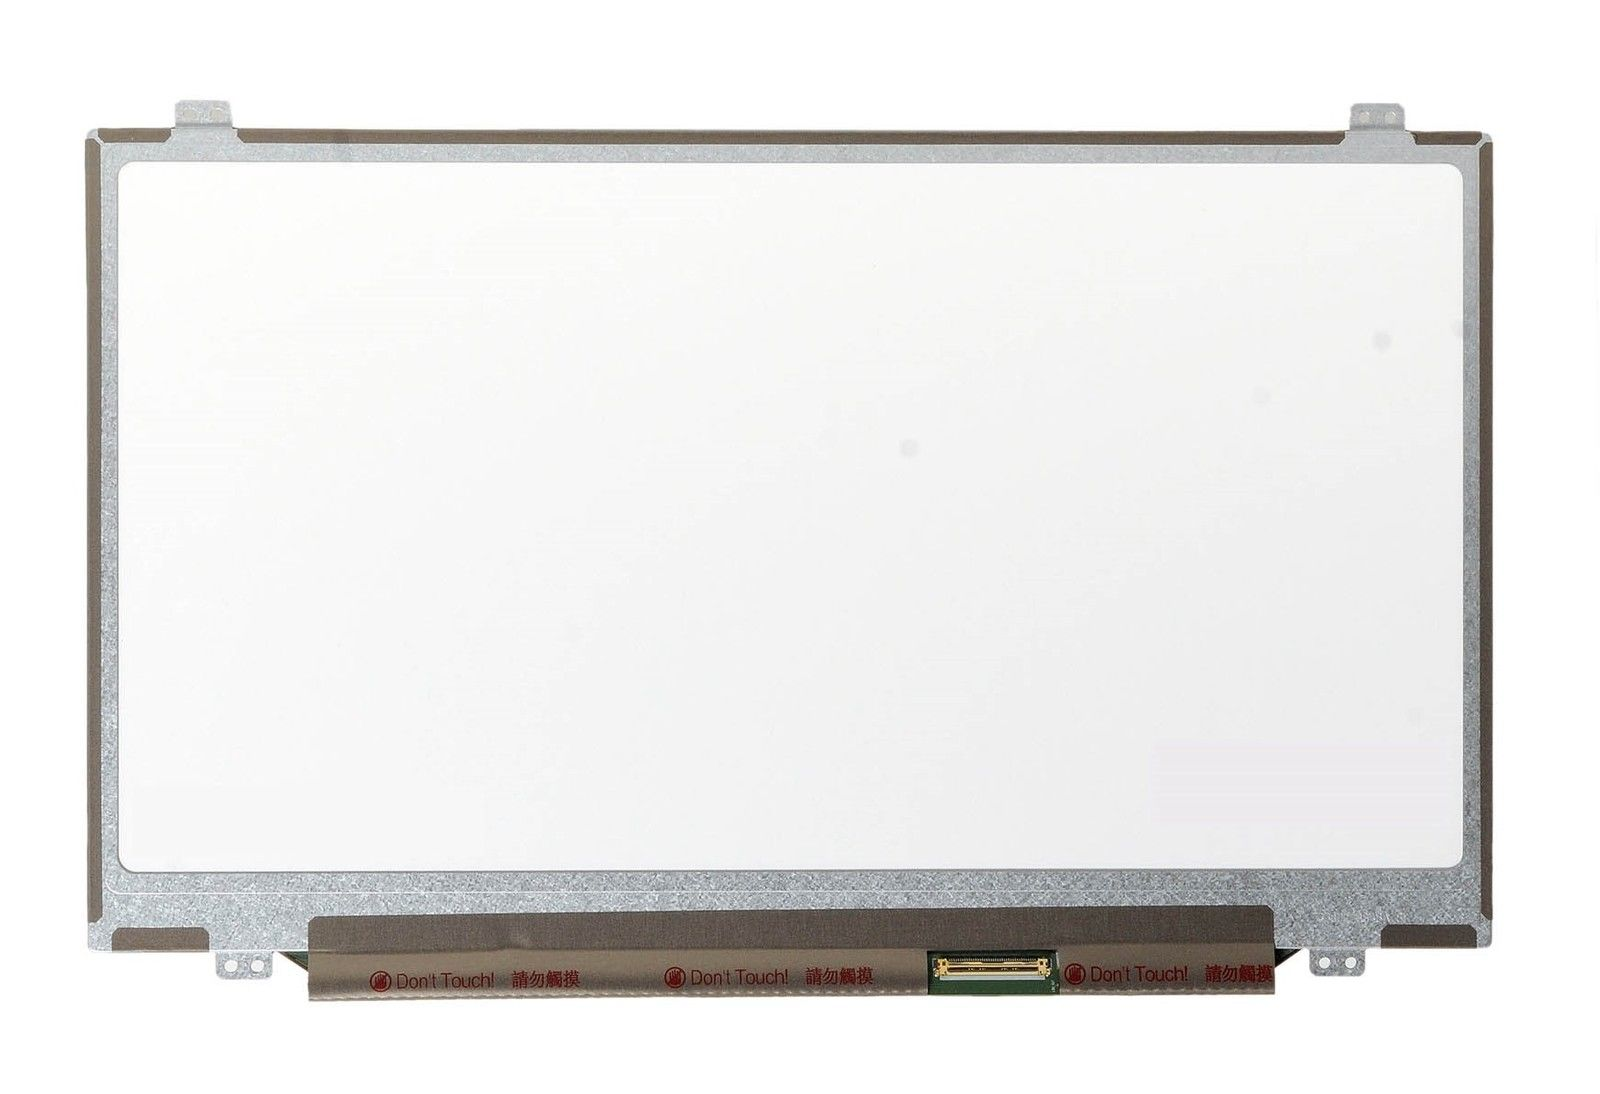 For HP Chromebook 14 New 14.0 LED LCD Screen WXGA HD 40 pin Display fits 14-Q010DX,14-Q029WM,14-Q039WM,14-Q050CA (740155-001) стоимость